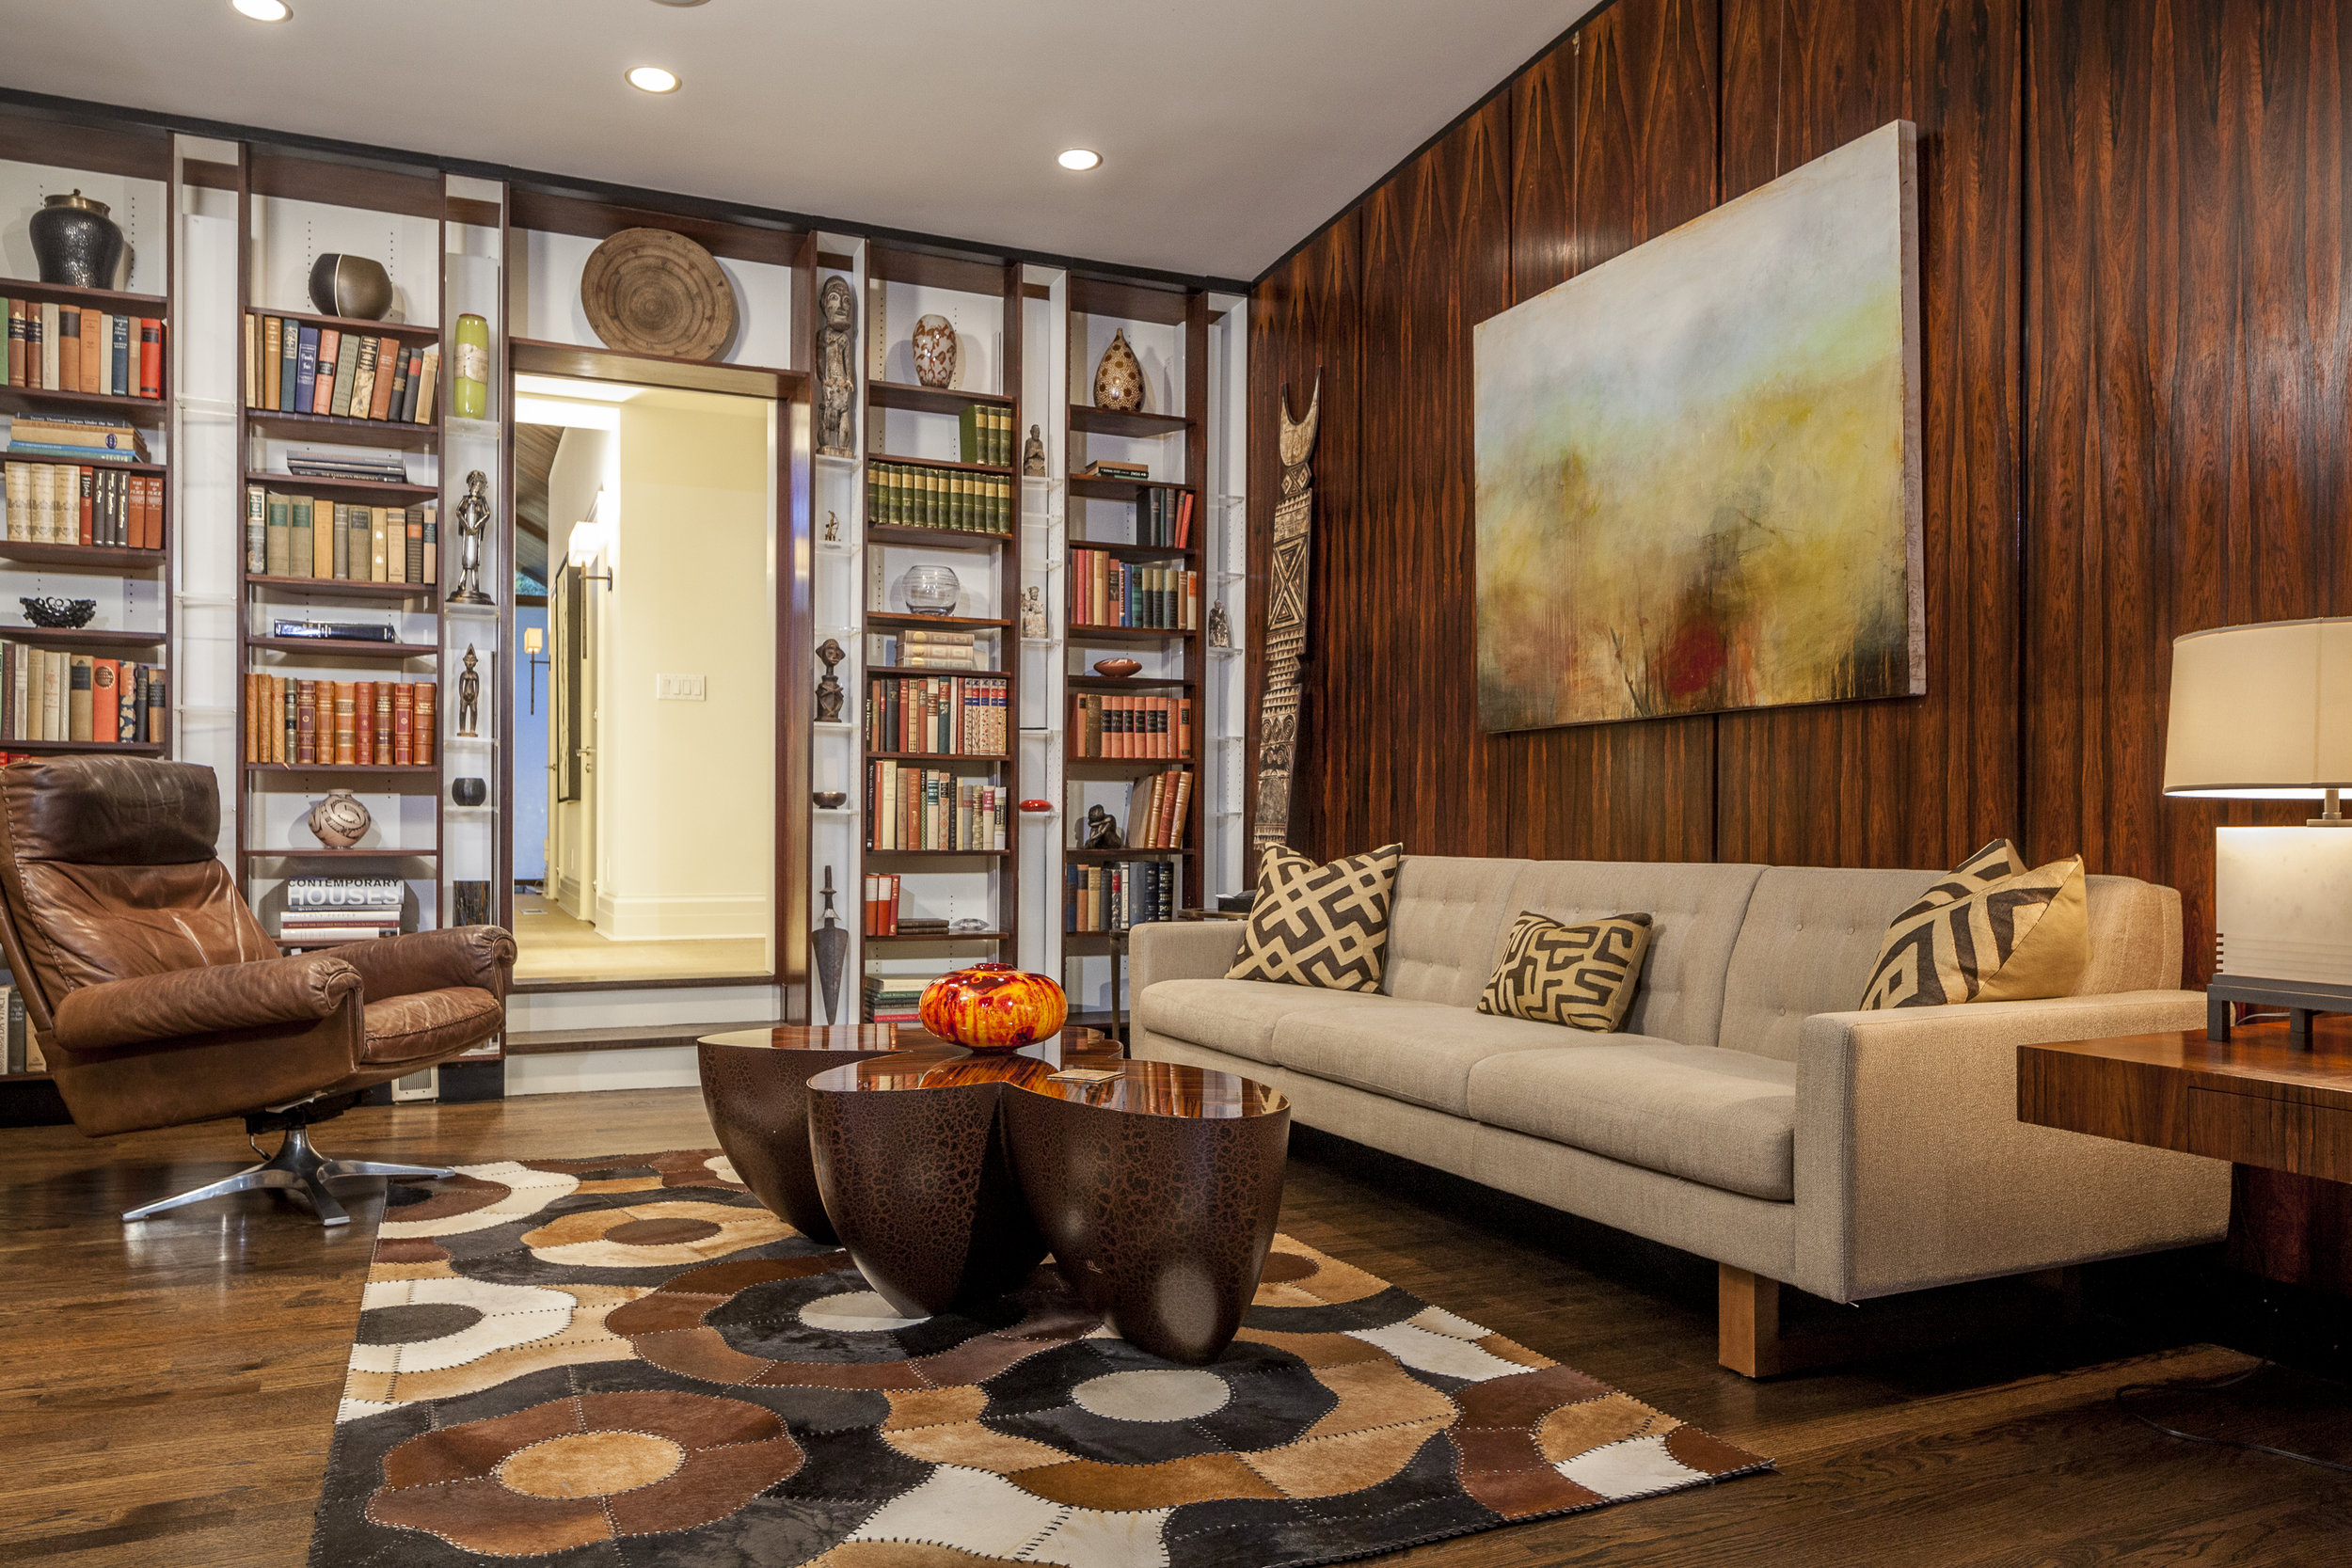 Family room with books and sofa and wooden table